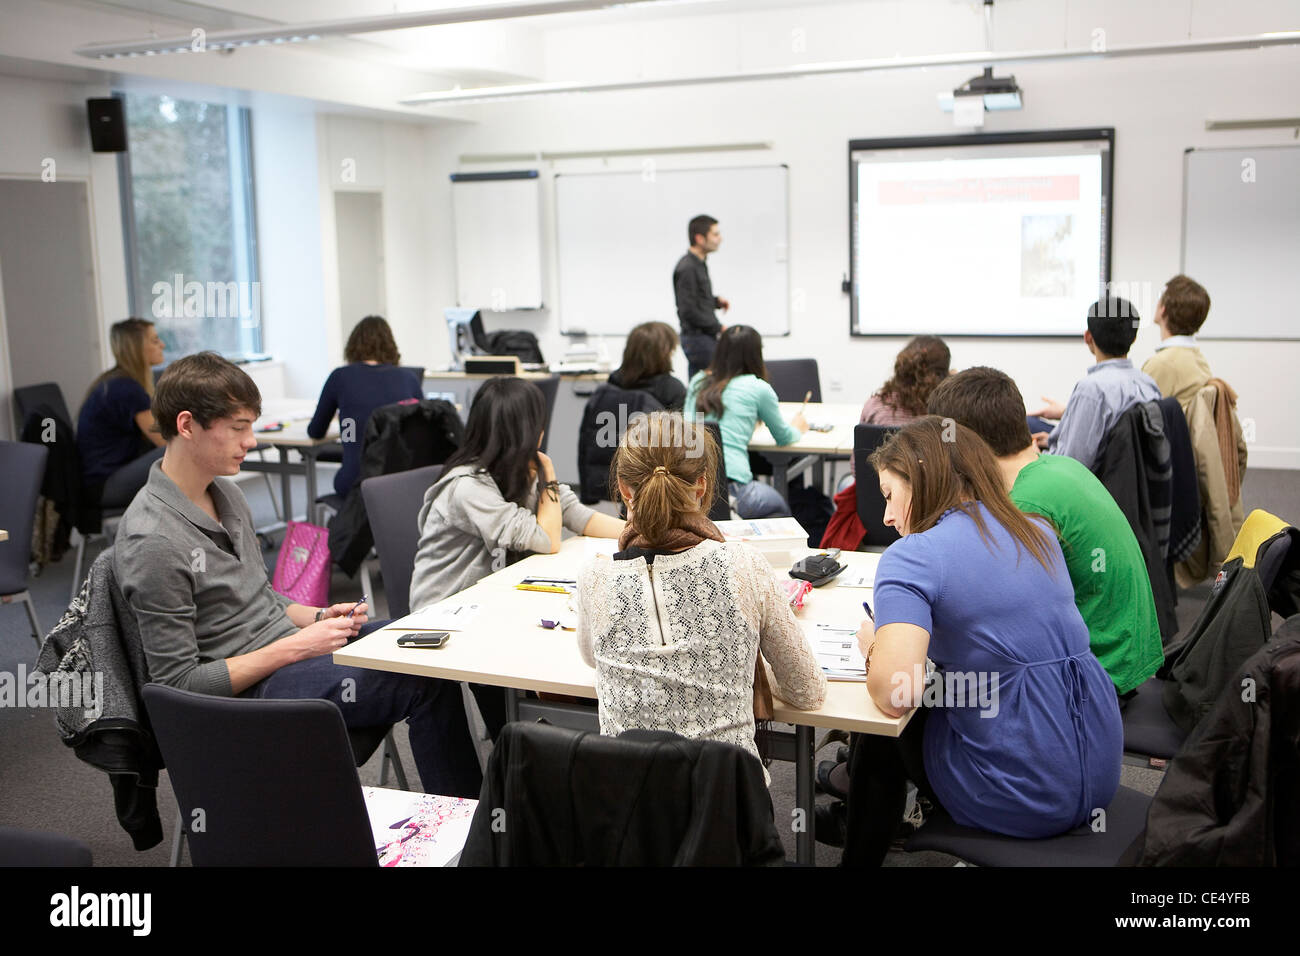 University students at a lecture - Stock Image